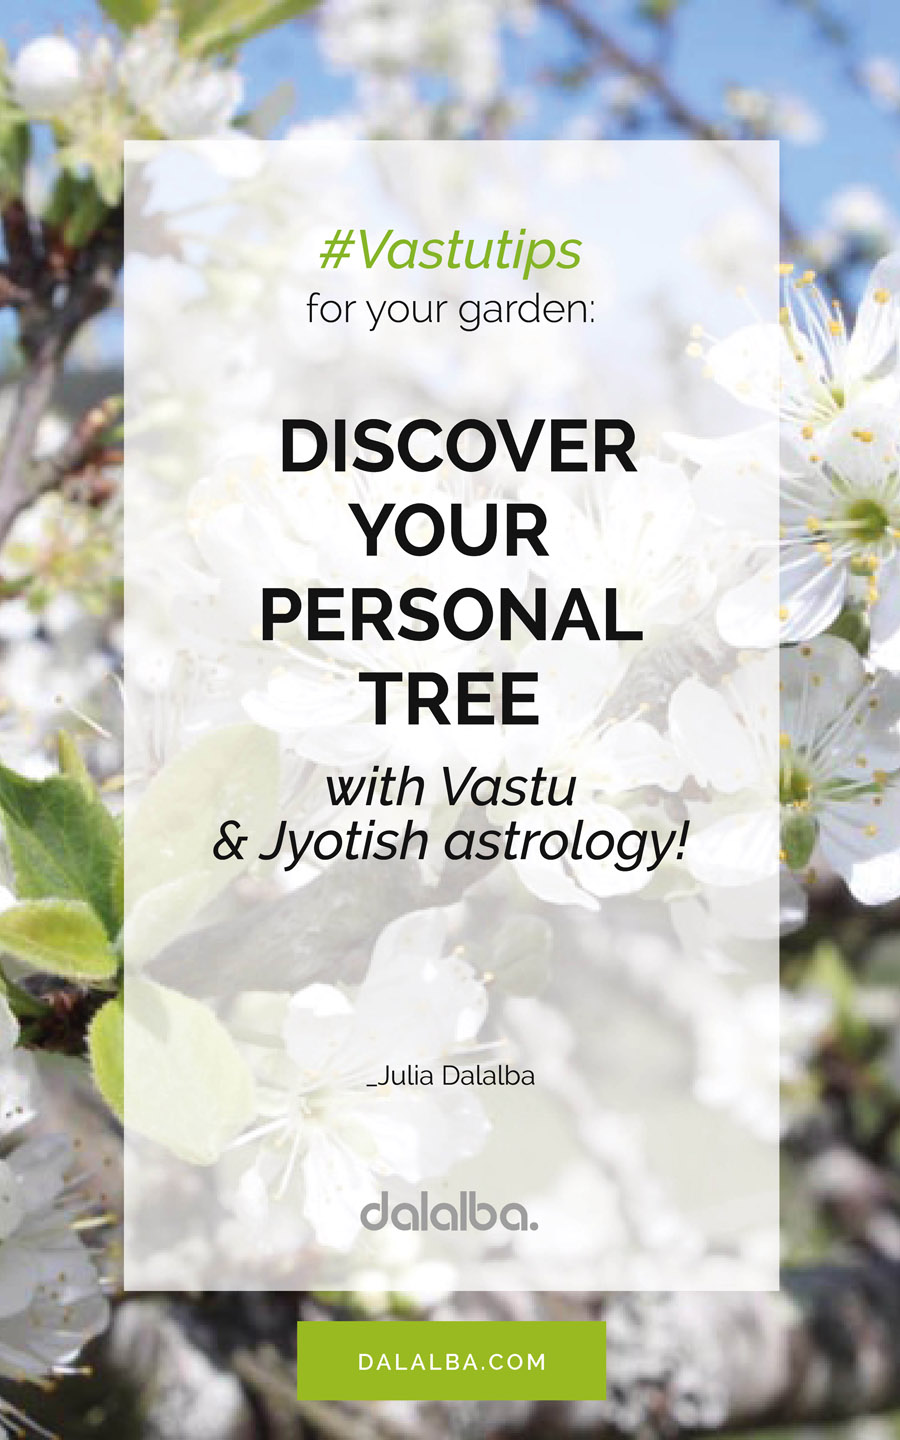 discover your personal tree with Vastu and Jyotish astrology